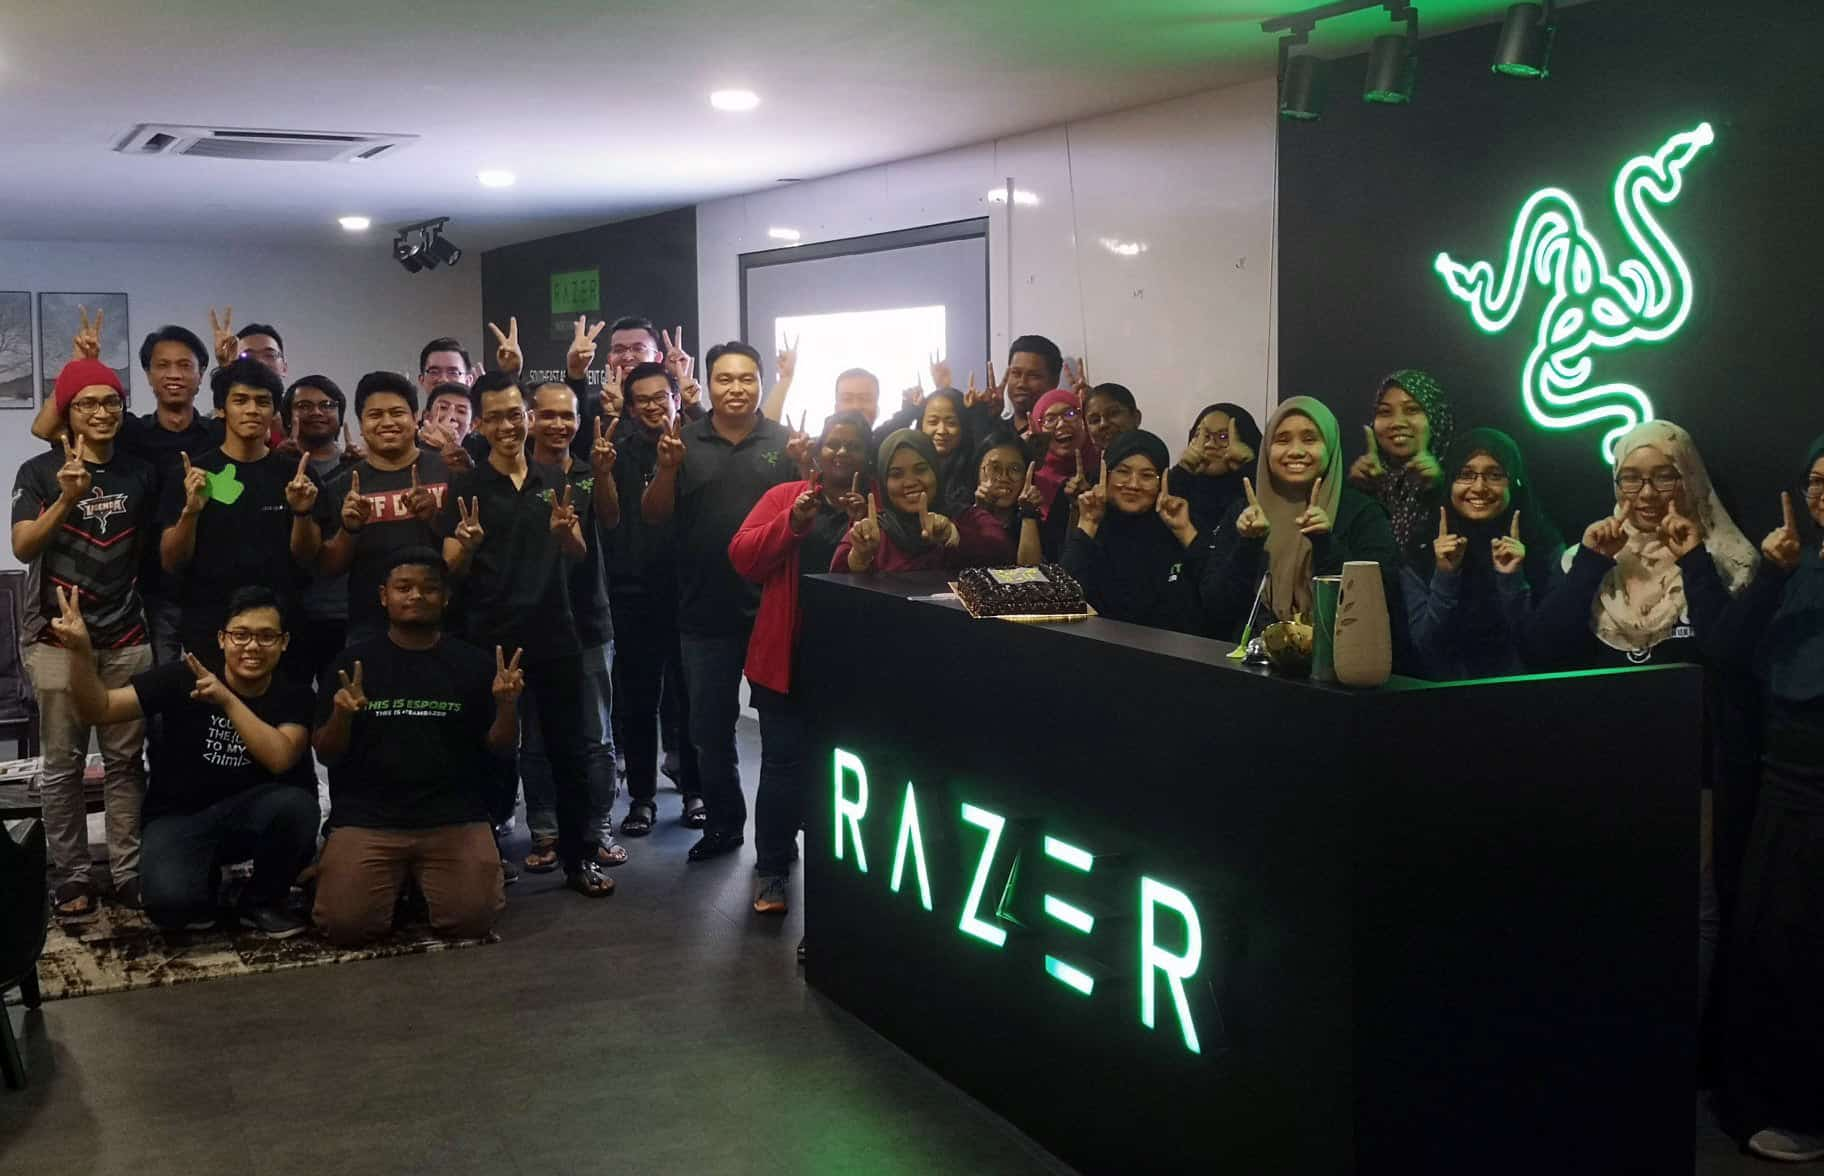 Razer Merchant Services History-Making on the massive 11.11 sales